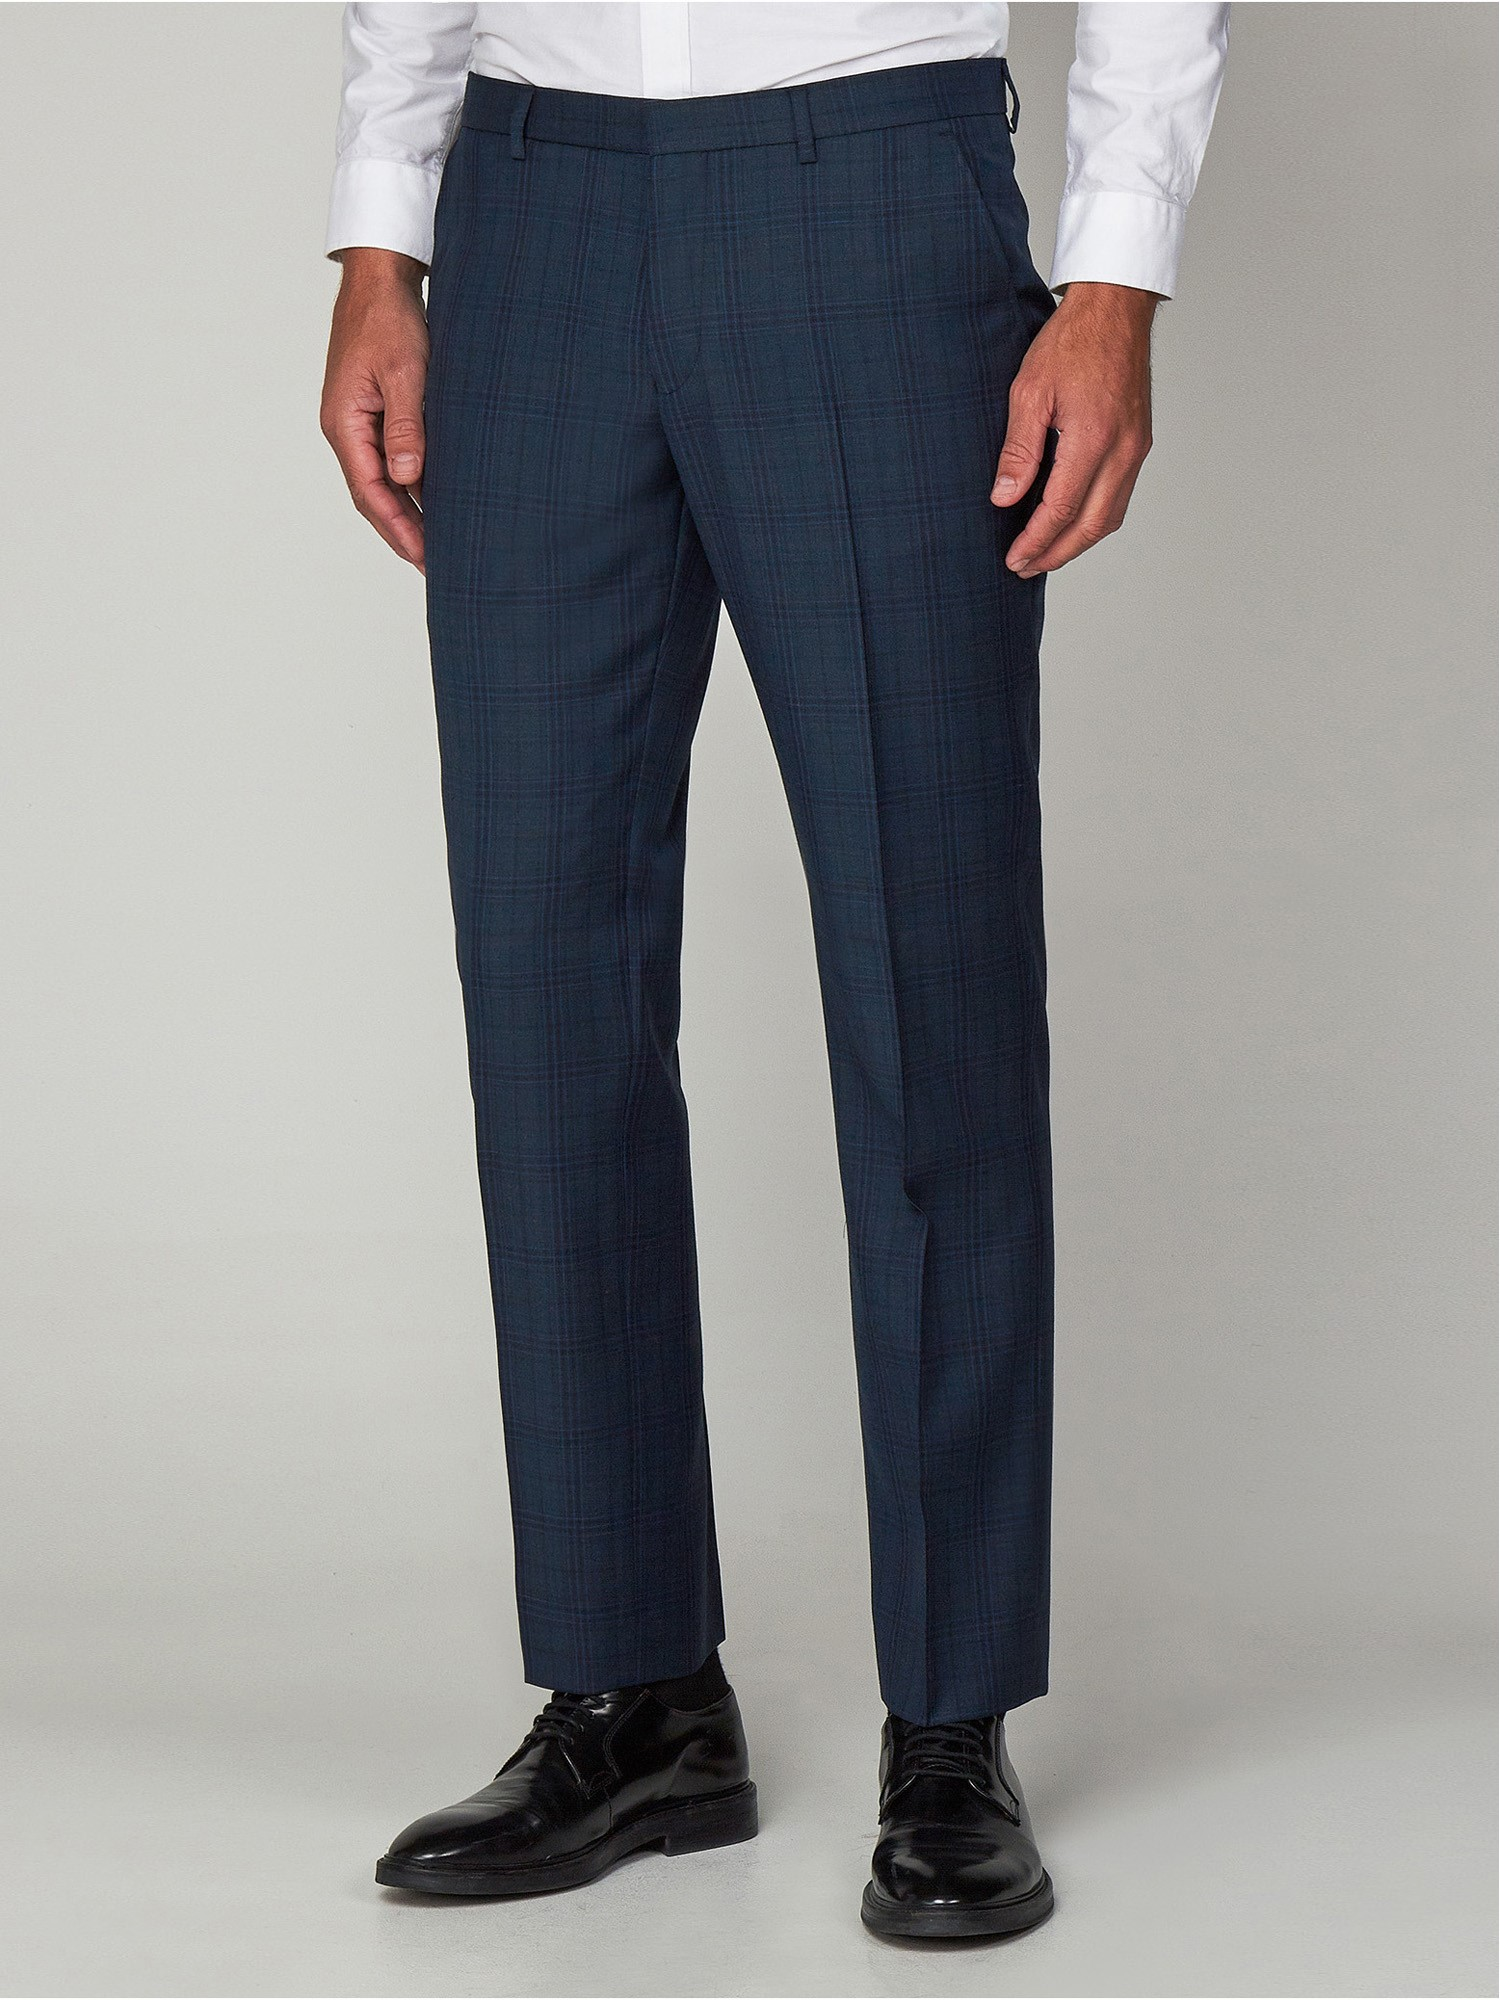 Deep Teal Check Tailored Fit Suit Trousers